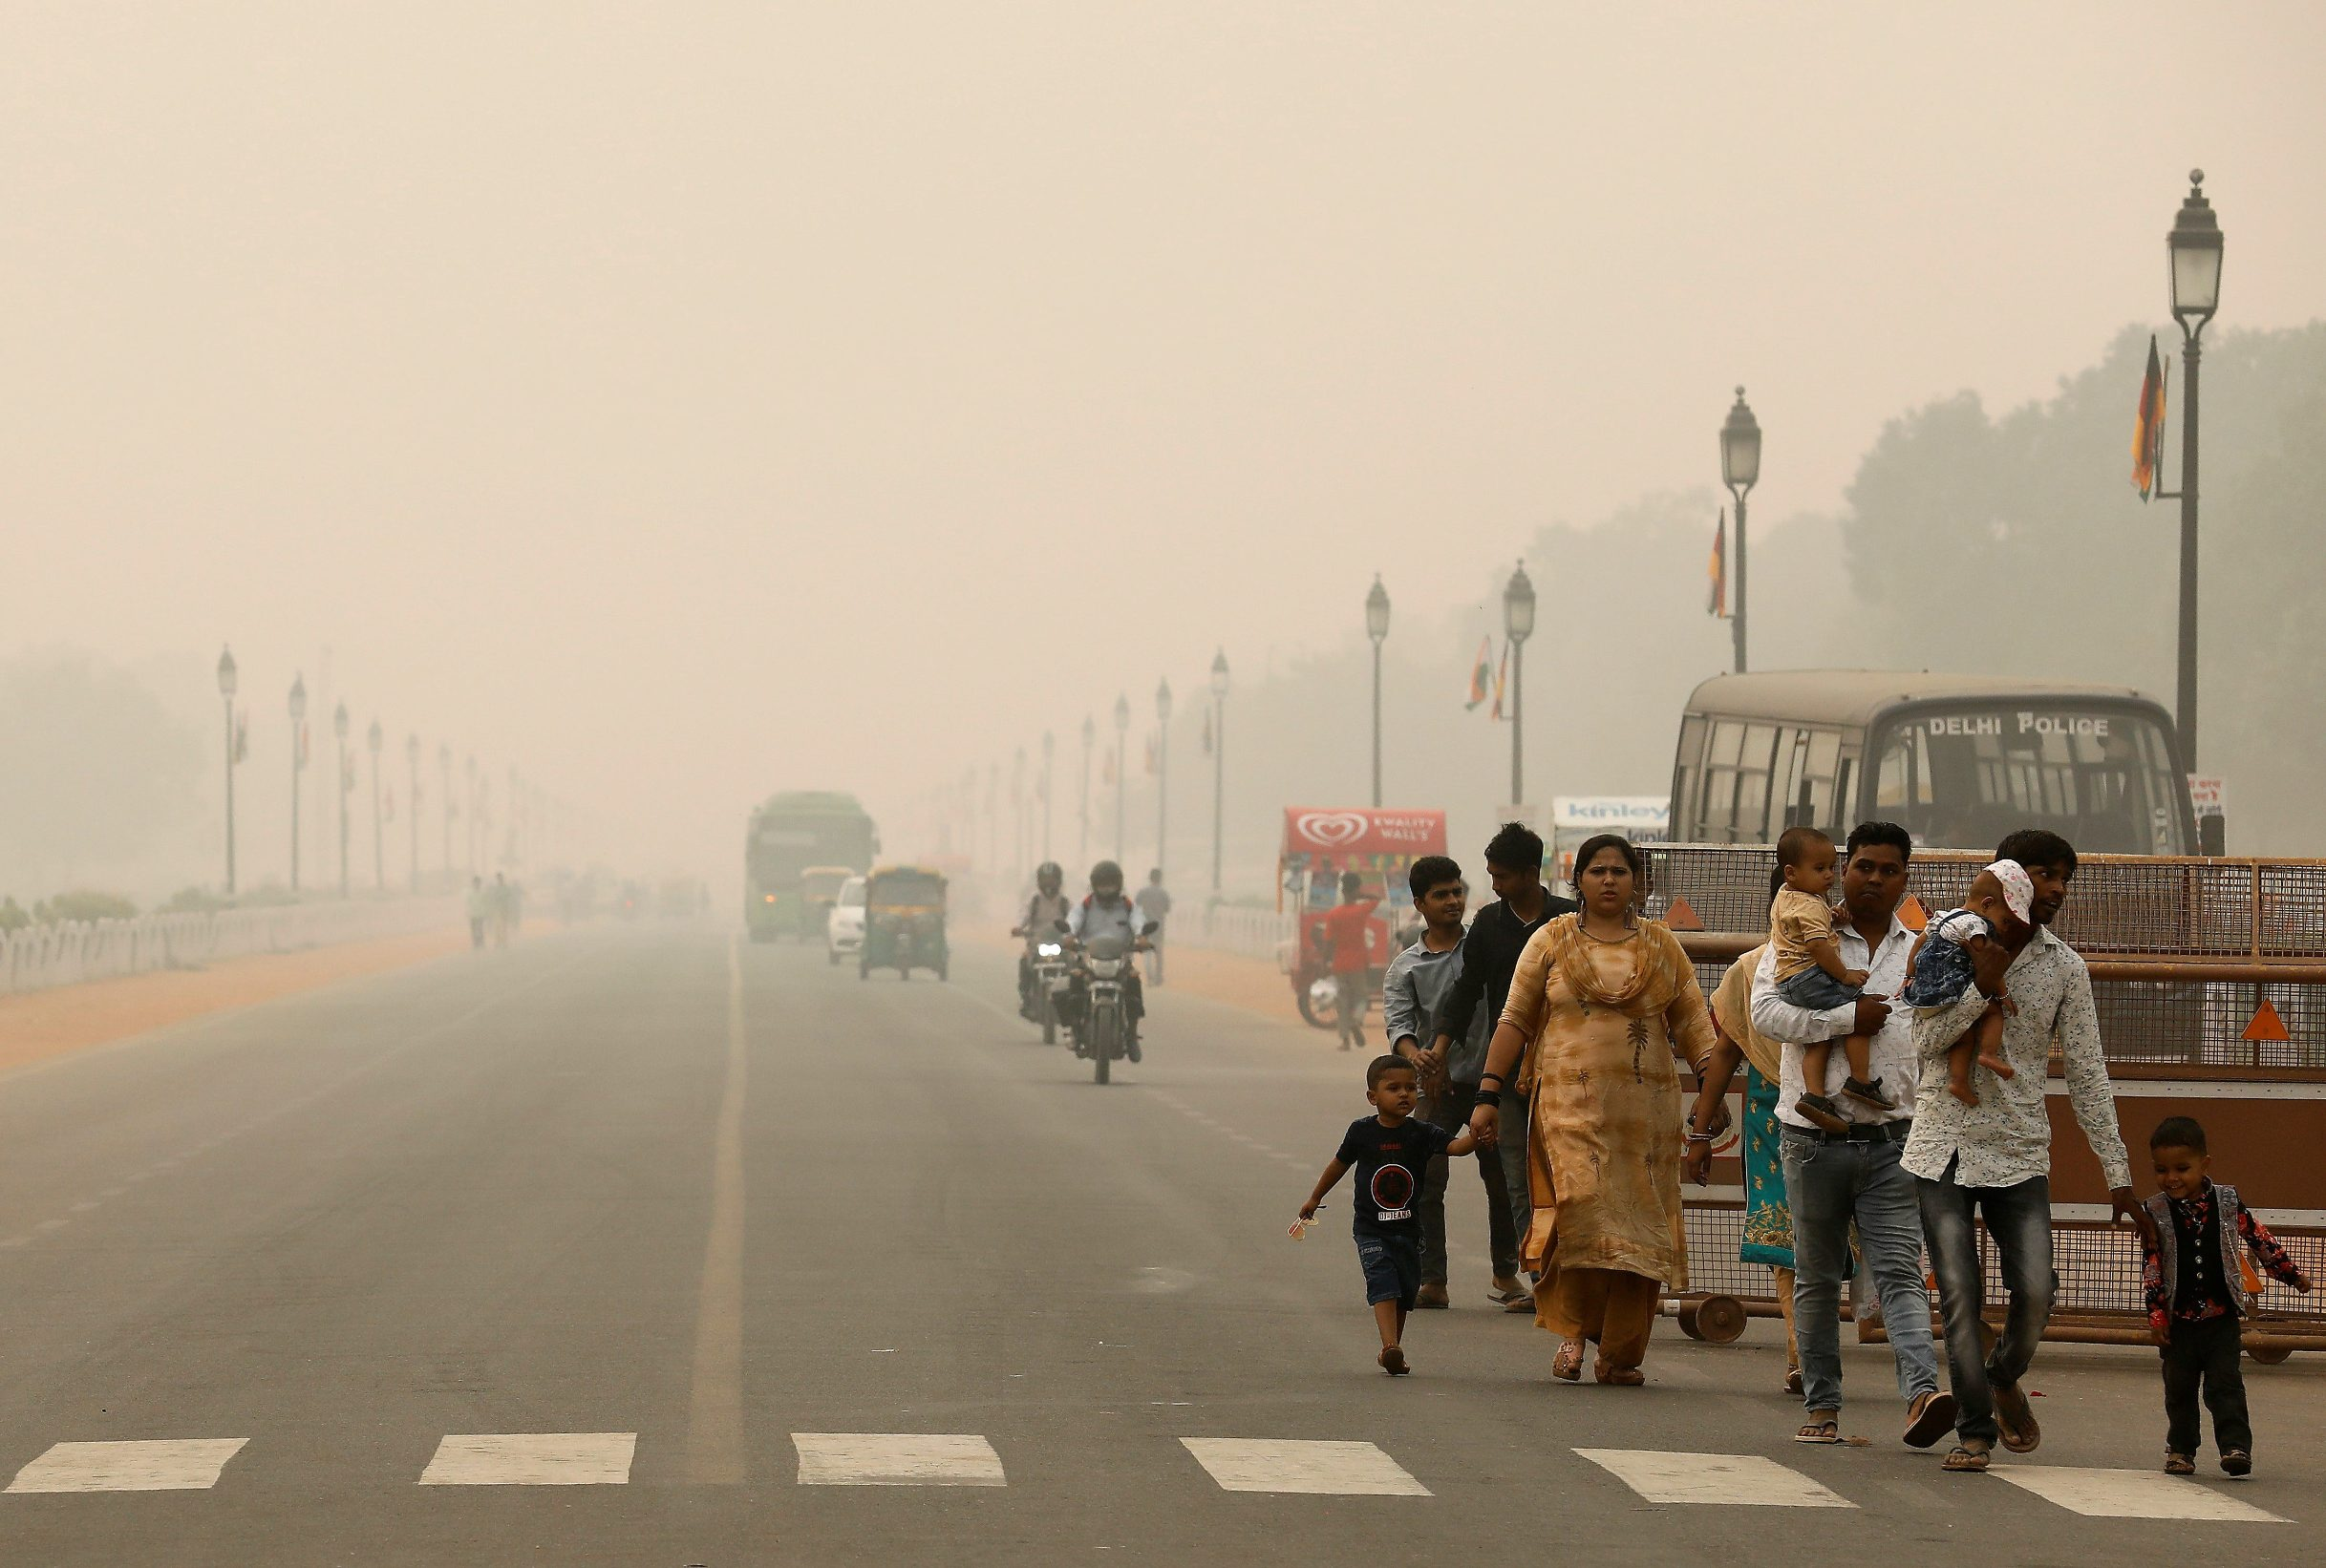 2019-11-01T093340Z_117541828_RC153022AC00_RTRMADP_3_INDIA-POLLUTION